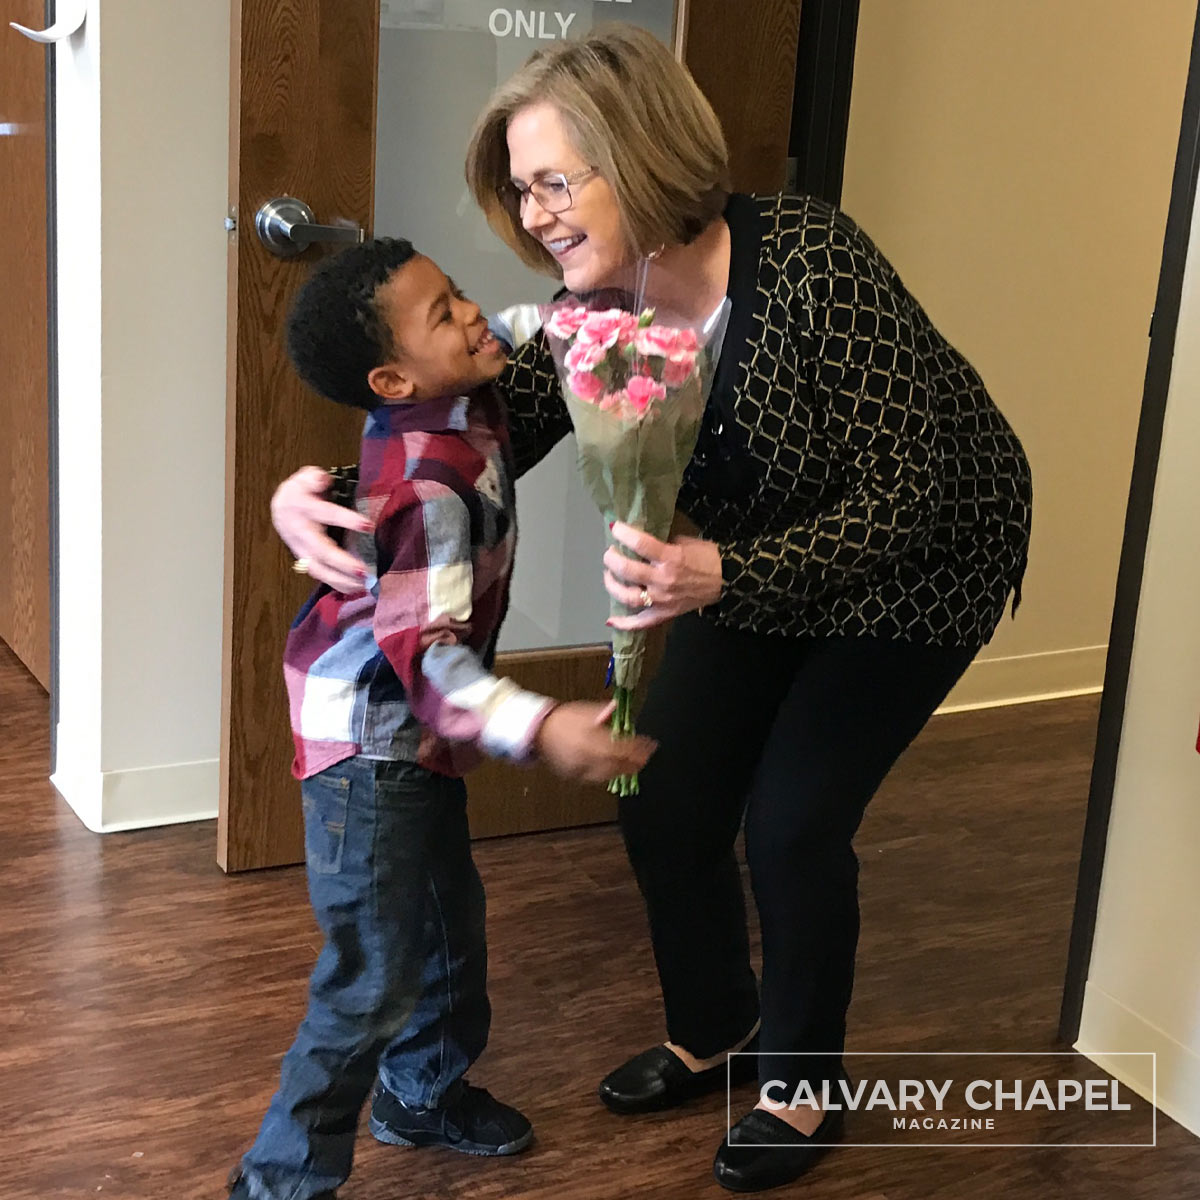 Woman receives flowers from boy